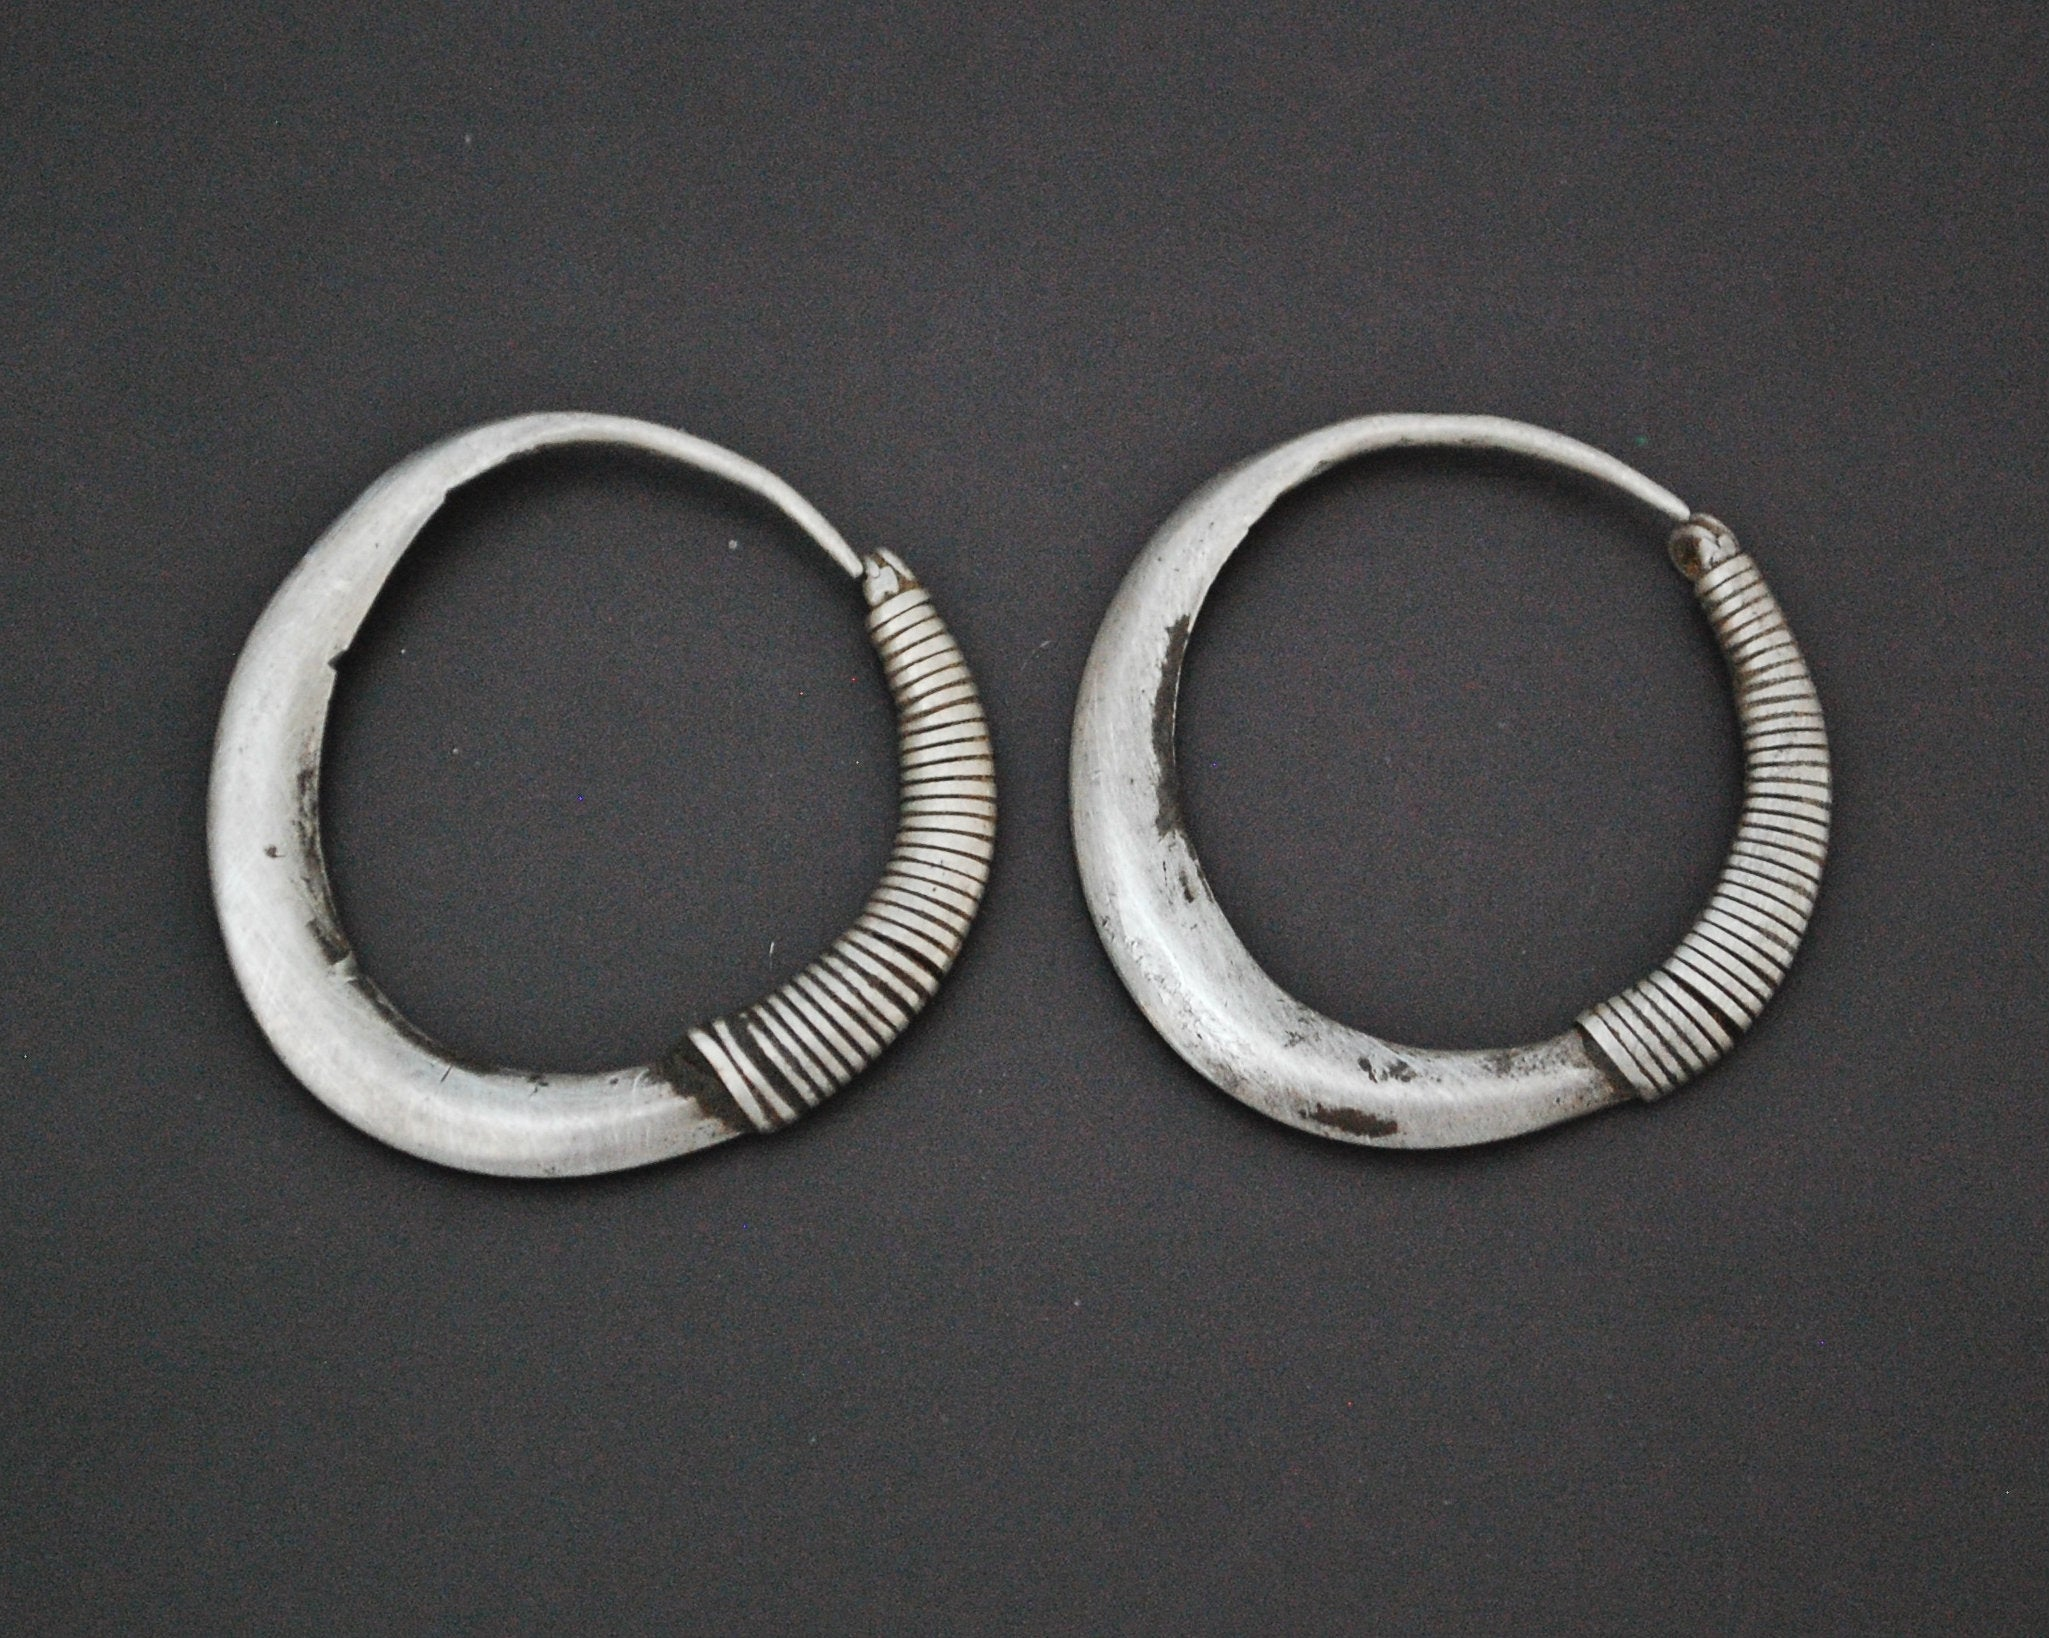 Antique Afghani Hoop Earrings - Flatened